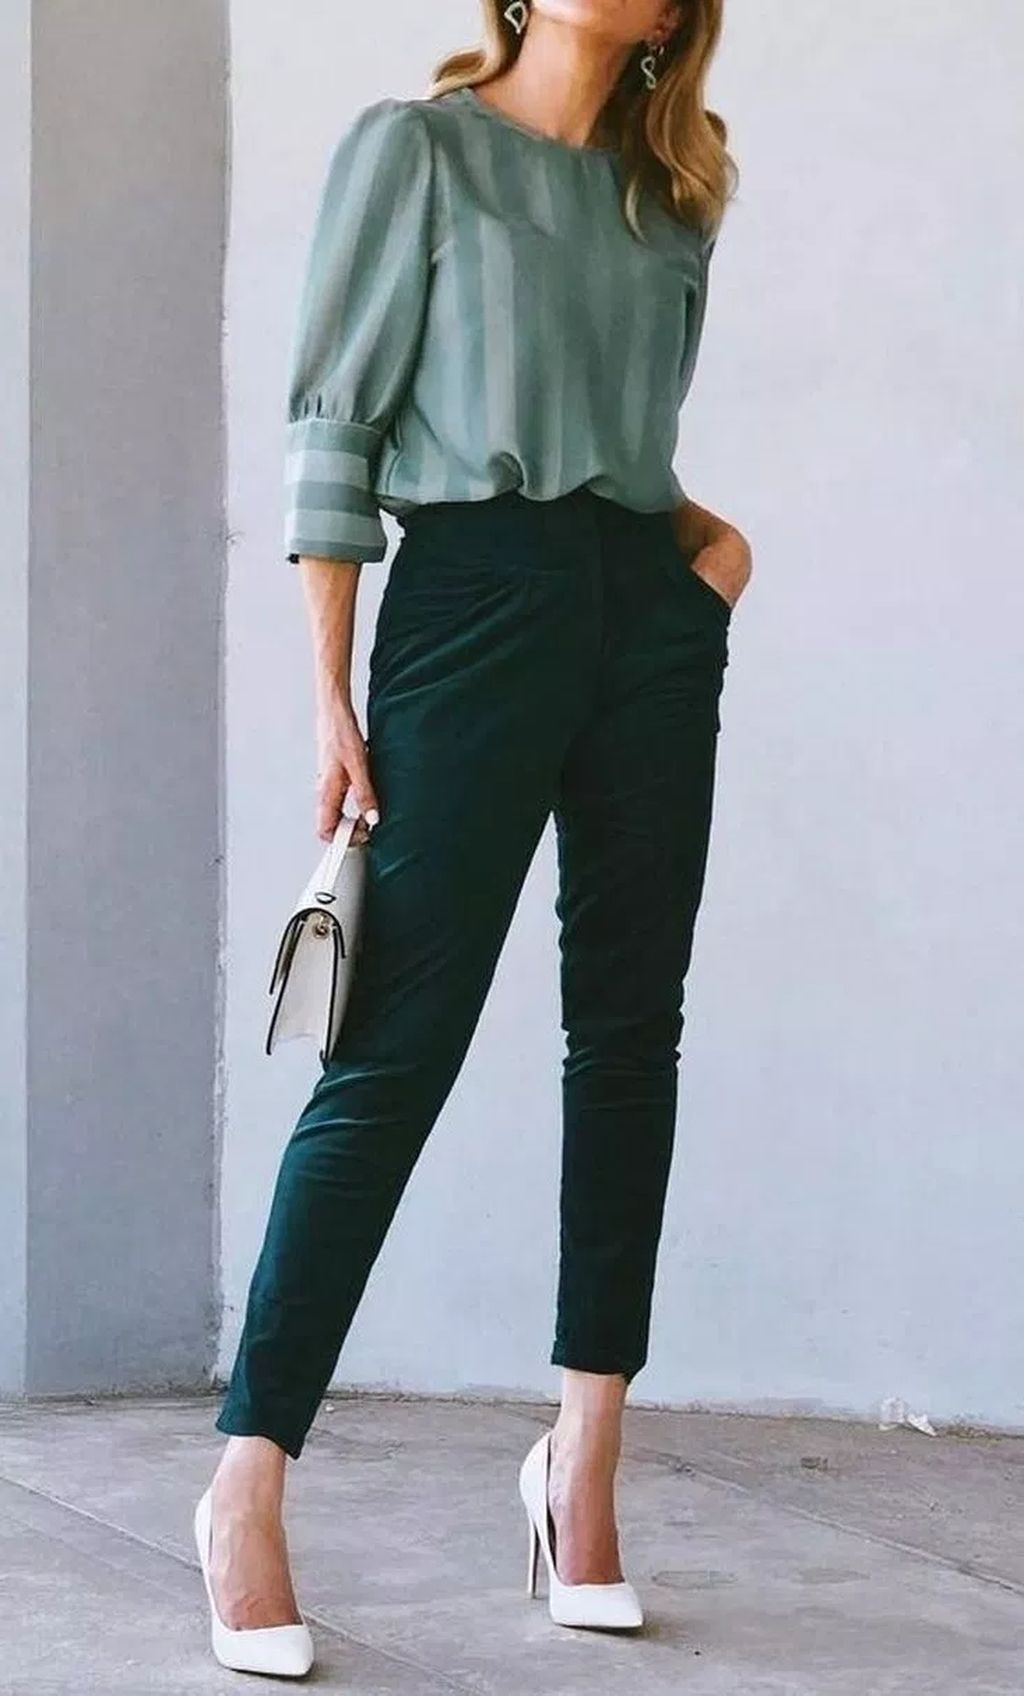 30+ Cute Work Outfits Ideas For Women To Copy In 2019 #workoutfitswomen